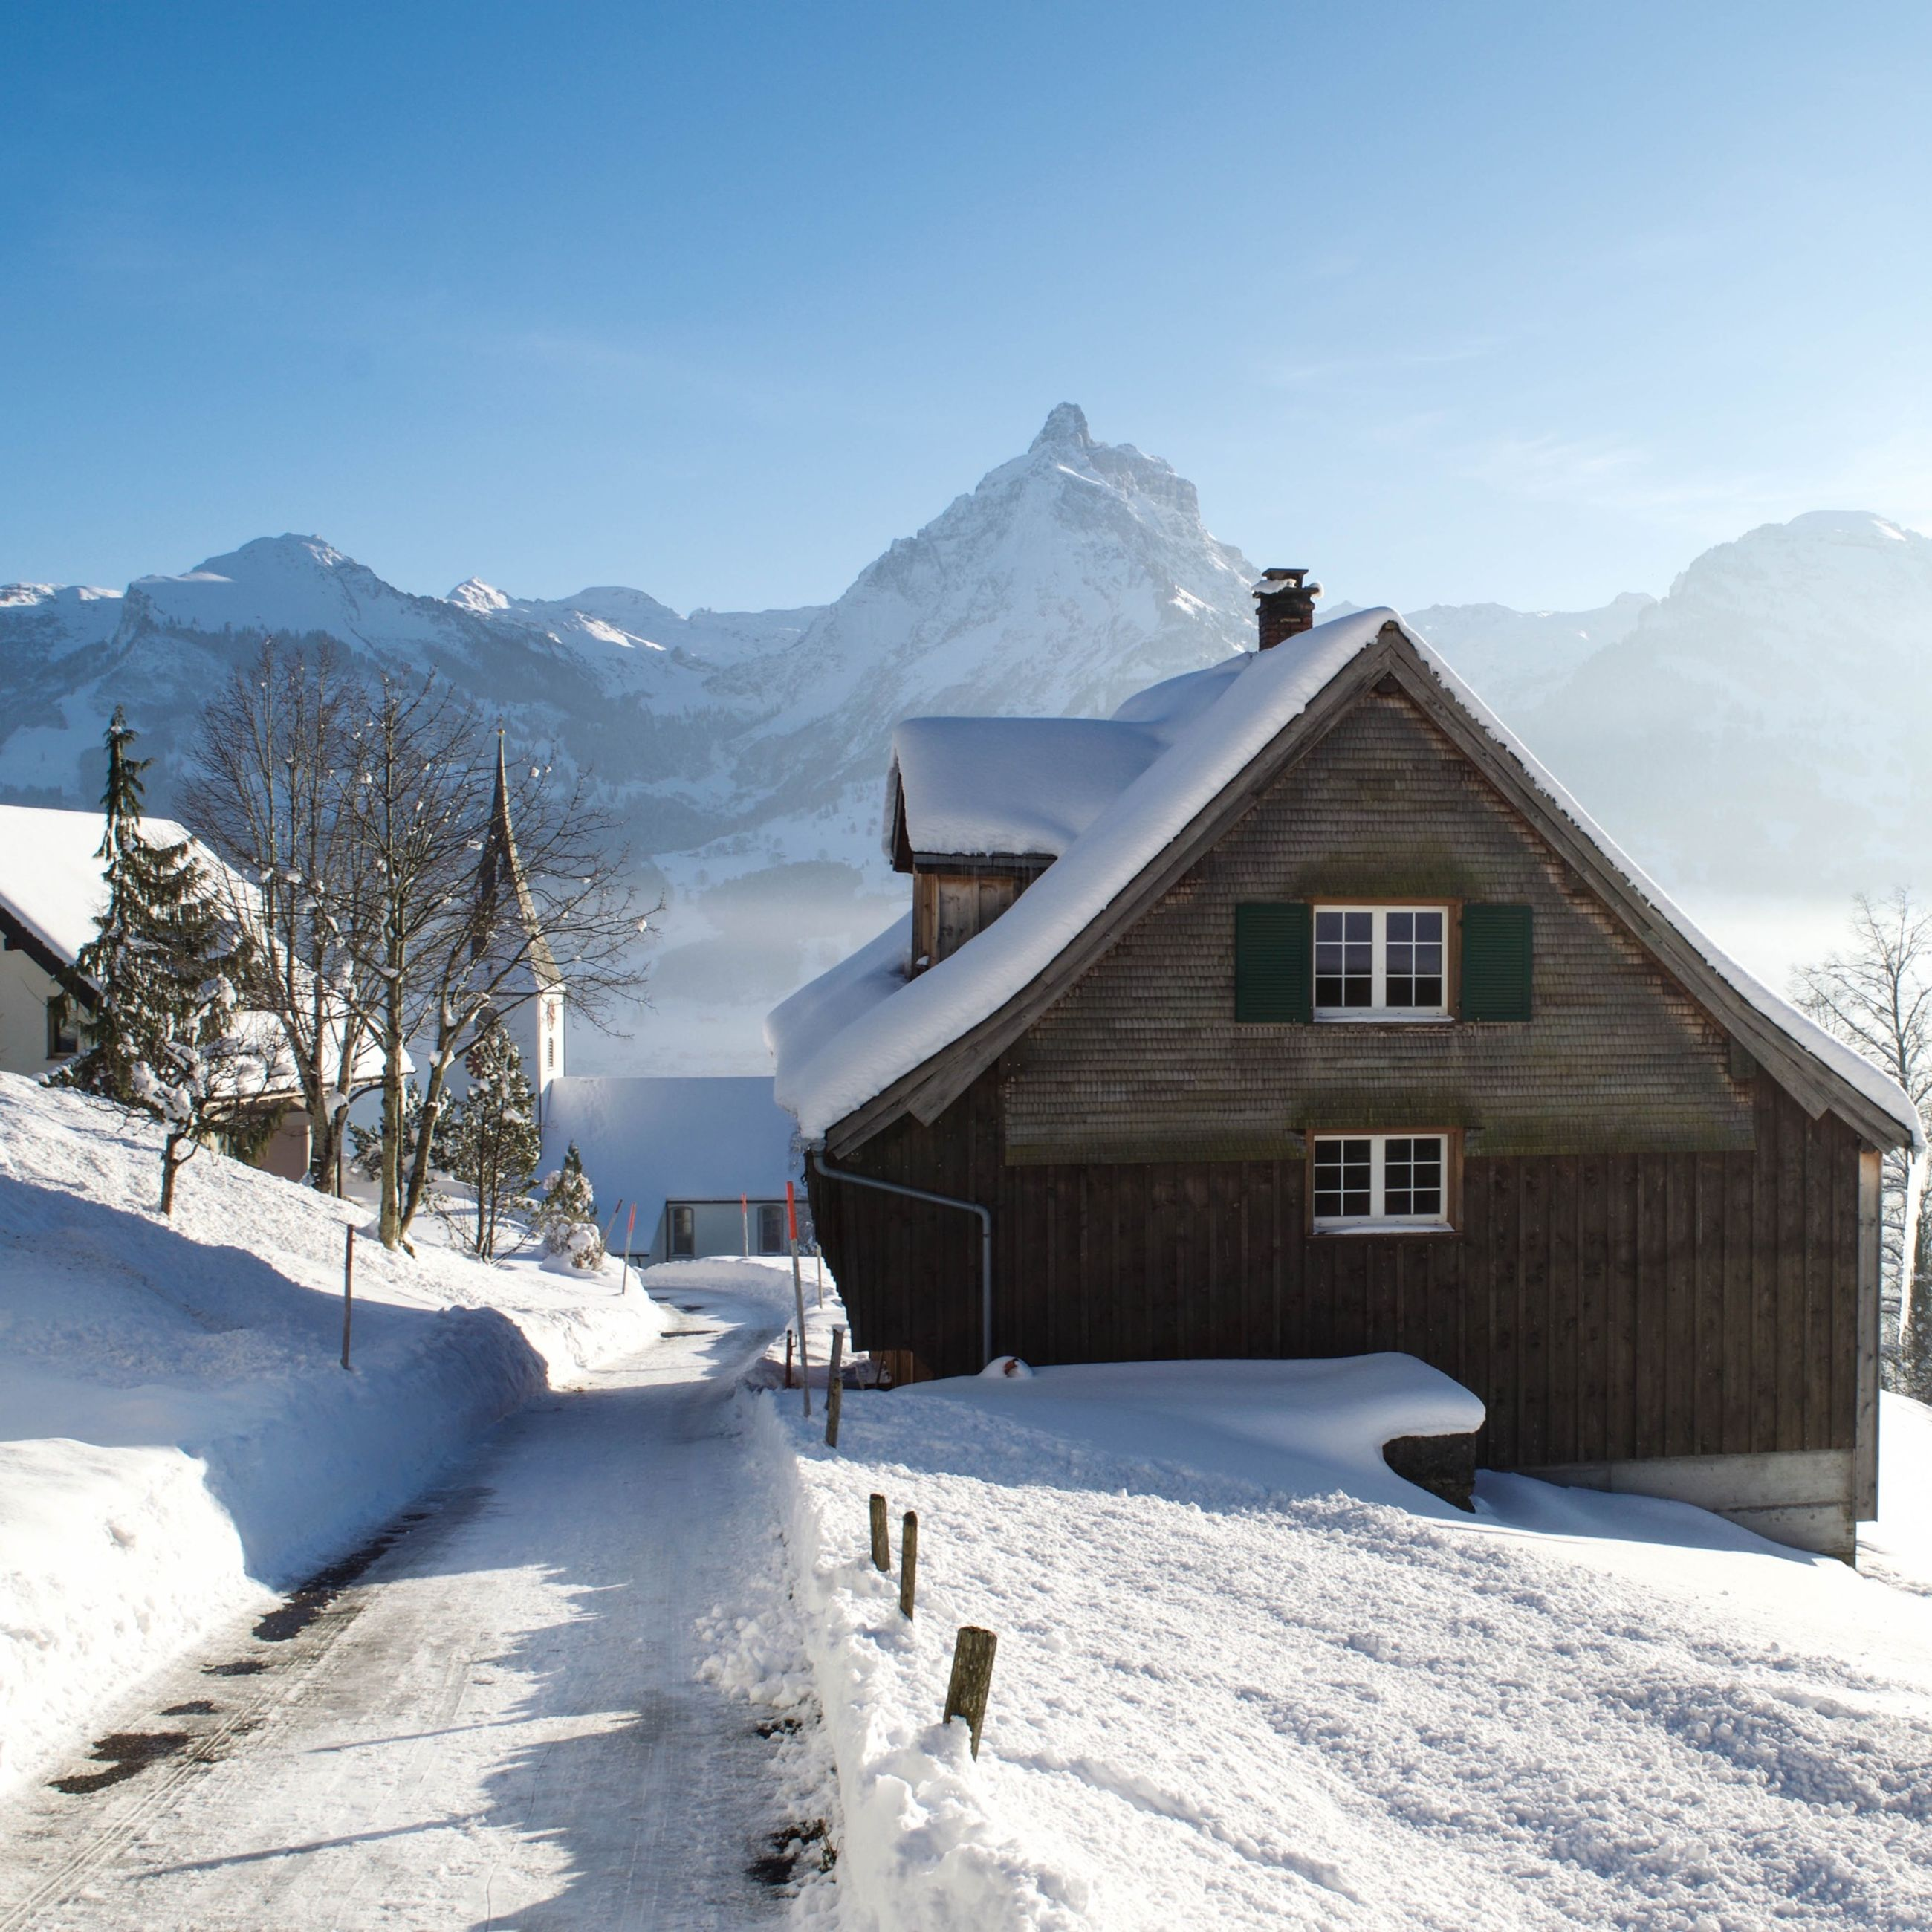 snow, winter, cold temperature, mountain, season, building exterior, house, built structure, architecture, weather, covering, snowcapped mountain, mountain range, white color, residential structure, landscape, tranquil scene, nature, clear sky, tranquility